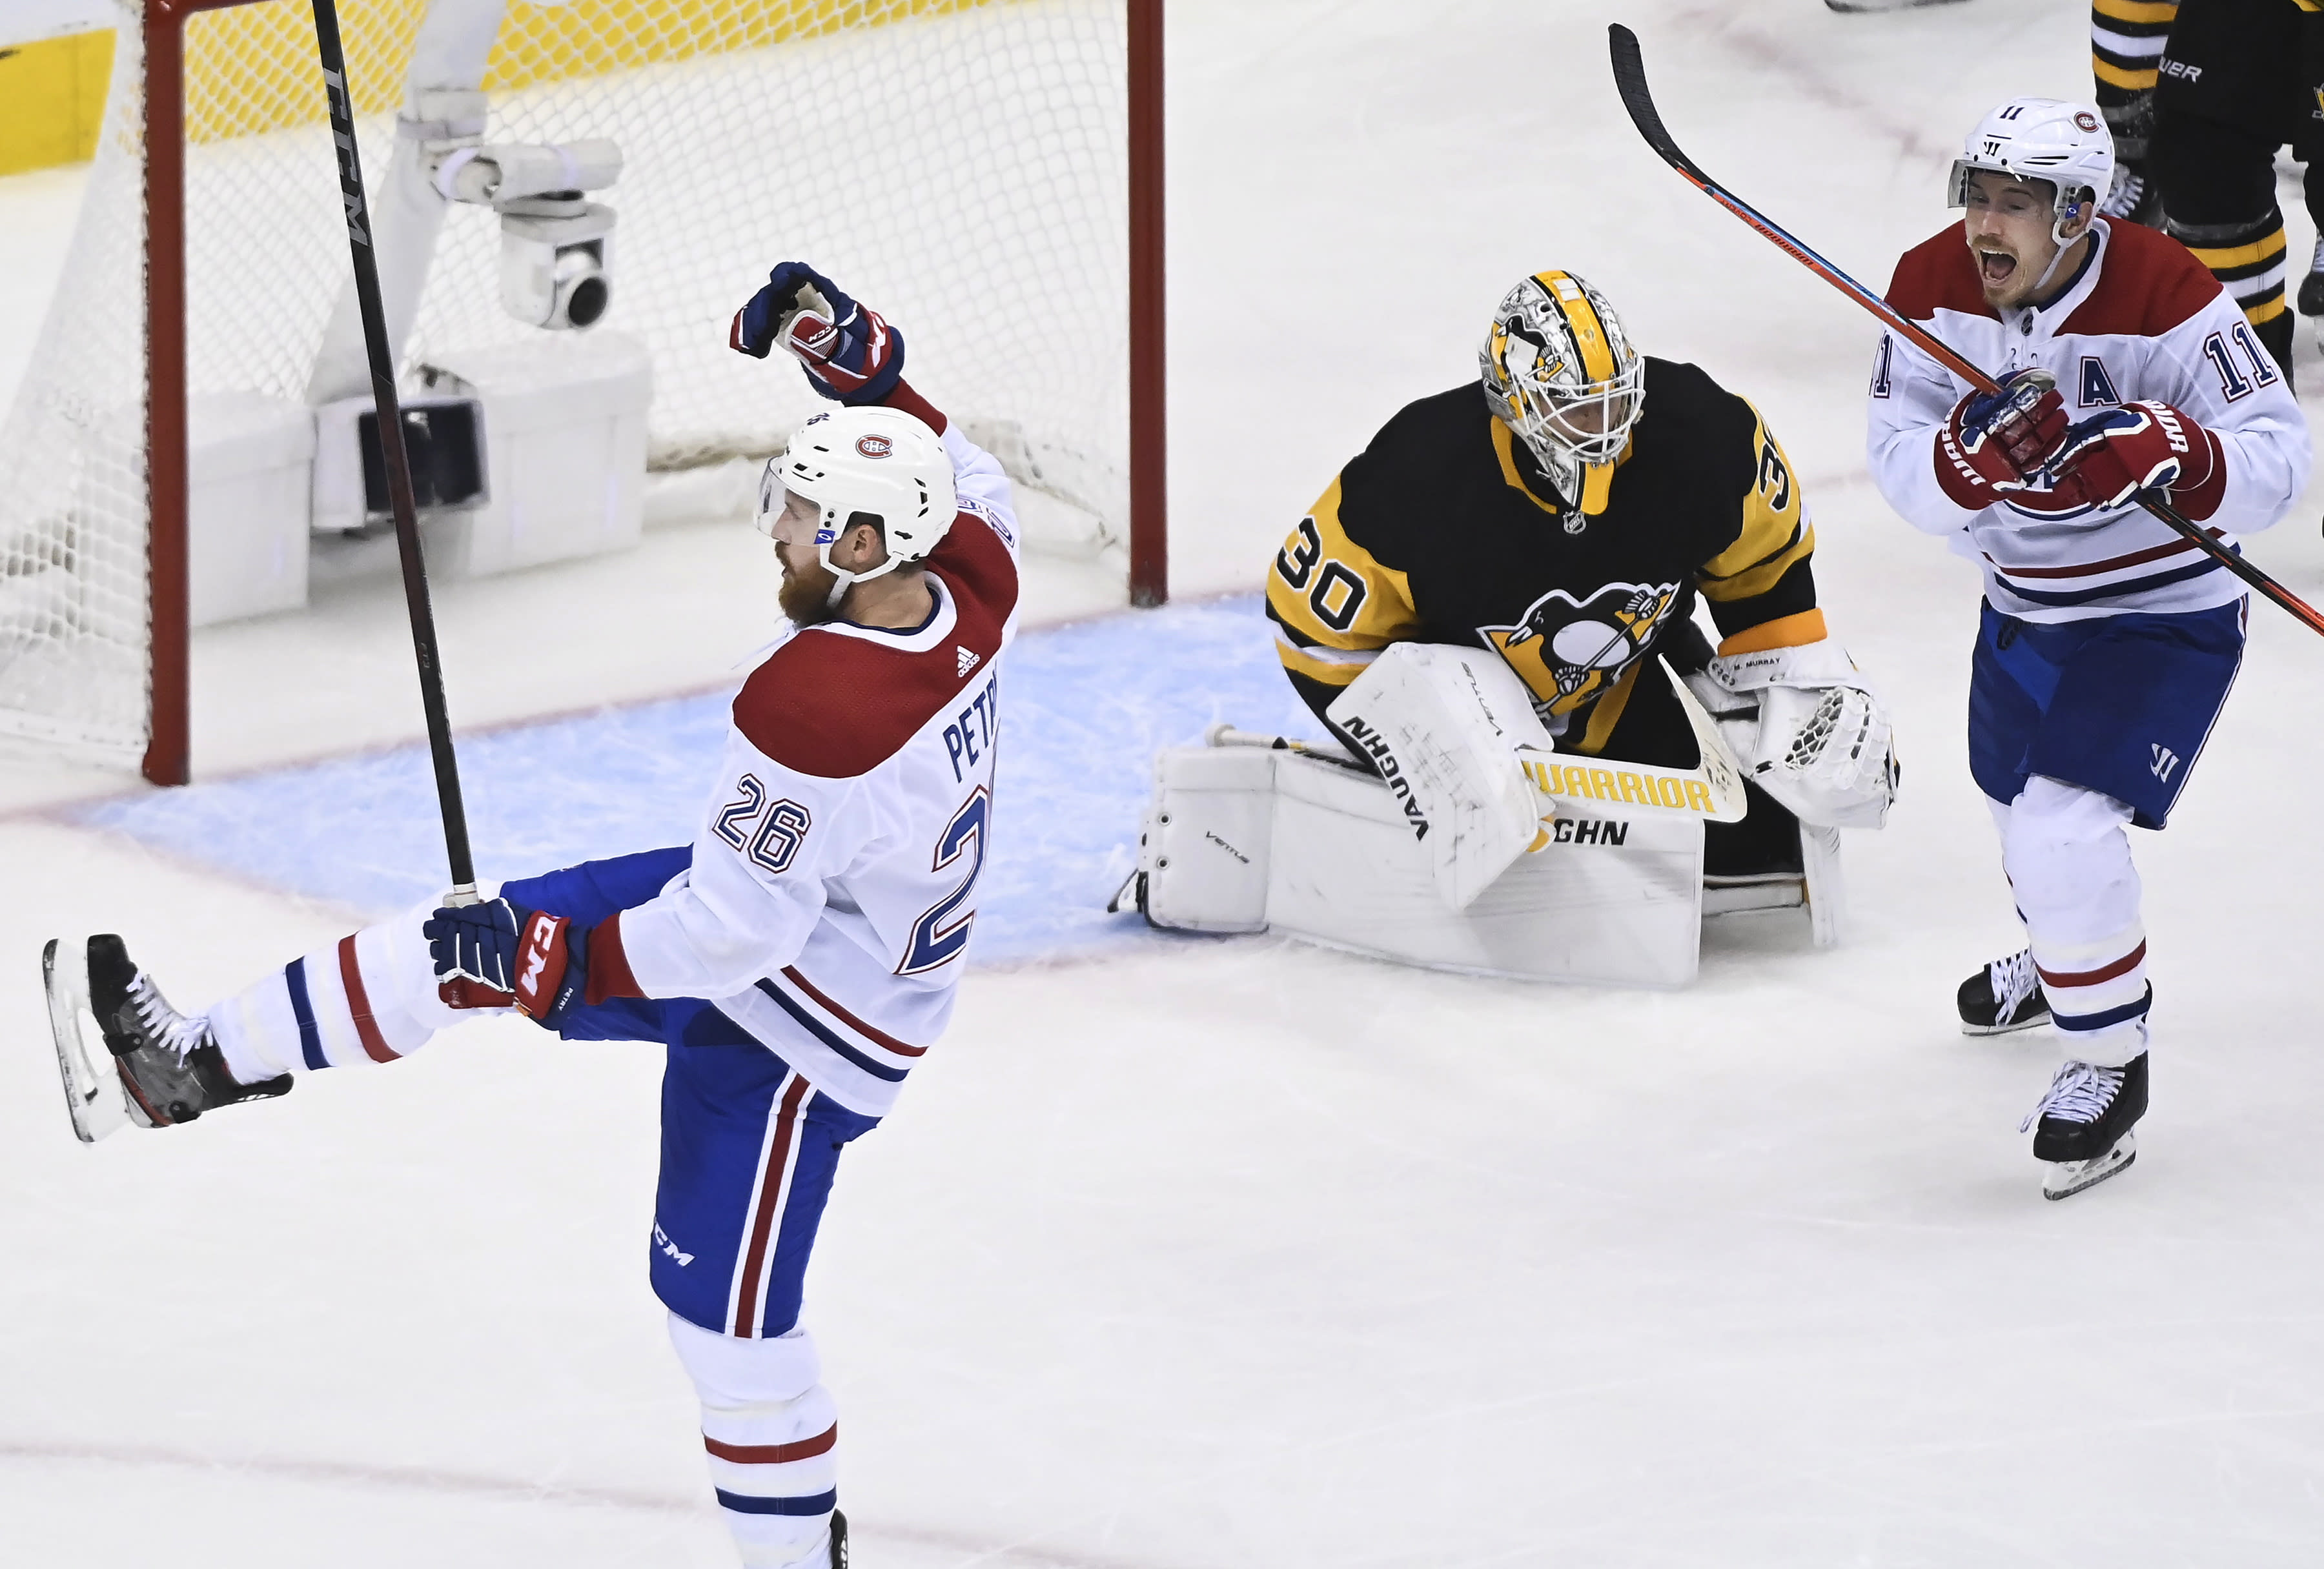 Montreal Canadiens defenseman Jeff Petry (26) celebrates along with right wing Brendan Gallagher (11) after scoring against Pittsburgh Penguins goaltender Matt Murray (30) during overtime in an NHL hockey playoff game in Toronto, Saturday, Aug. 1, 2020. (Nathan Denette/The Canadian Press via AP